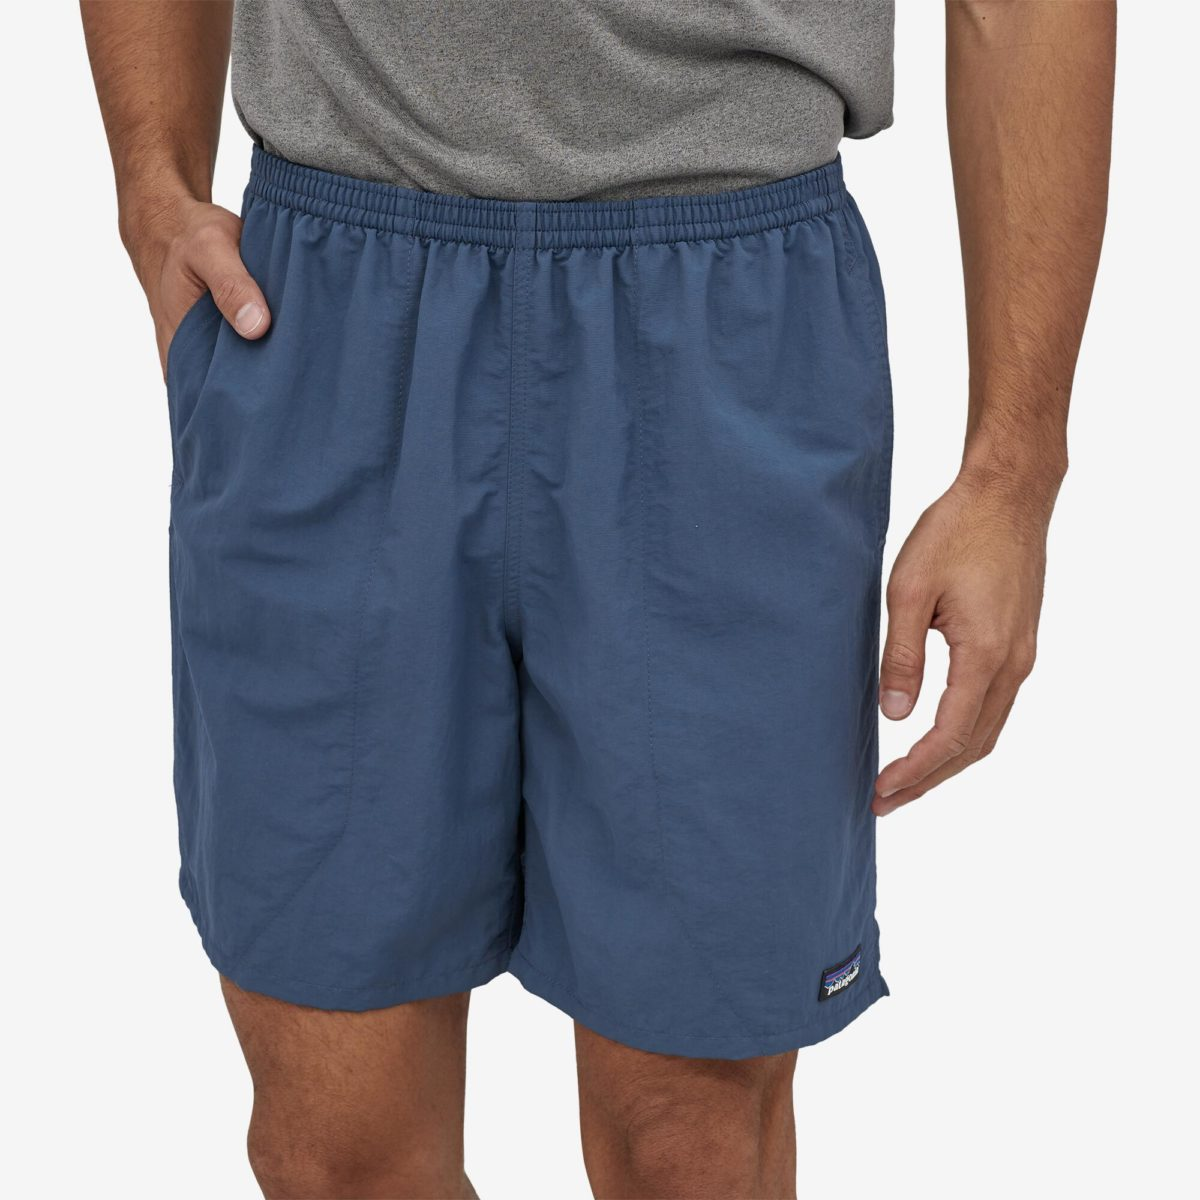 Patagonia – Men's Baggies